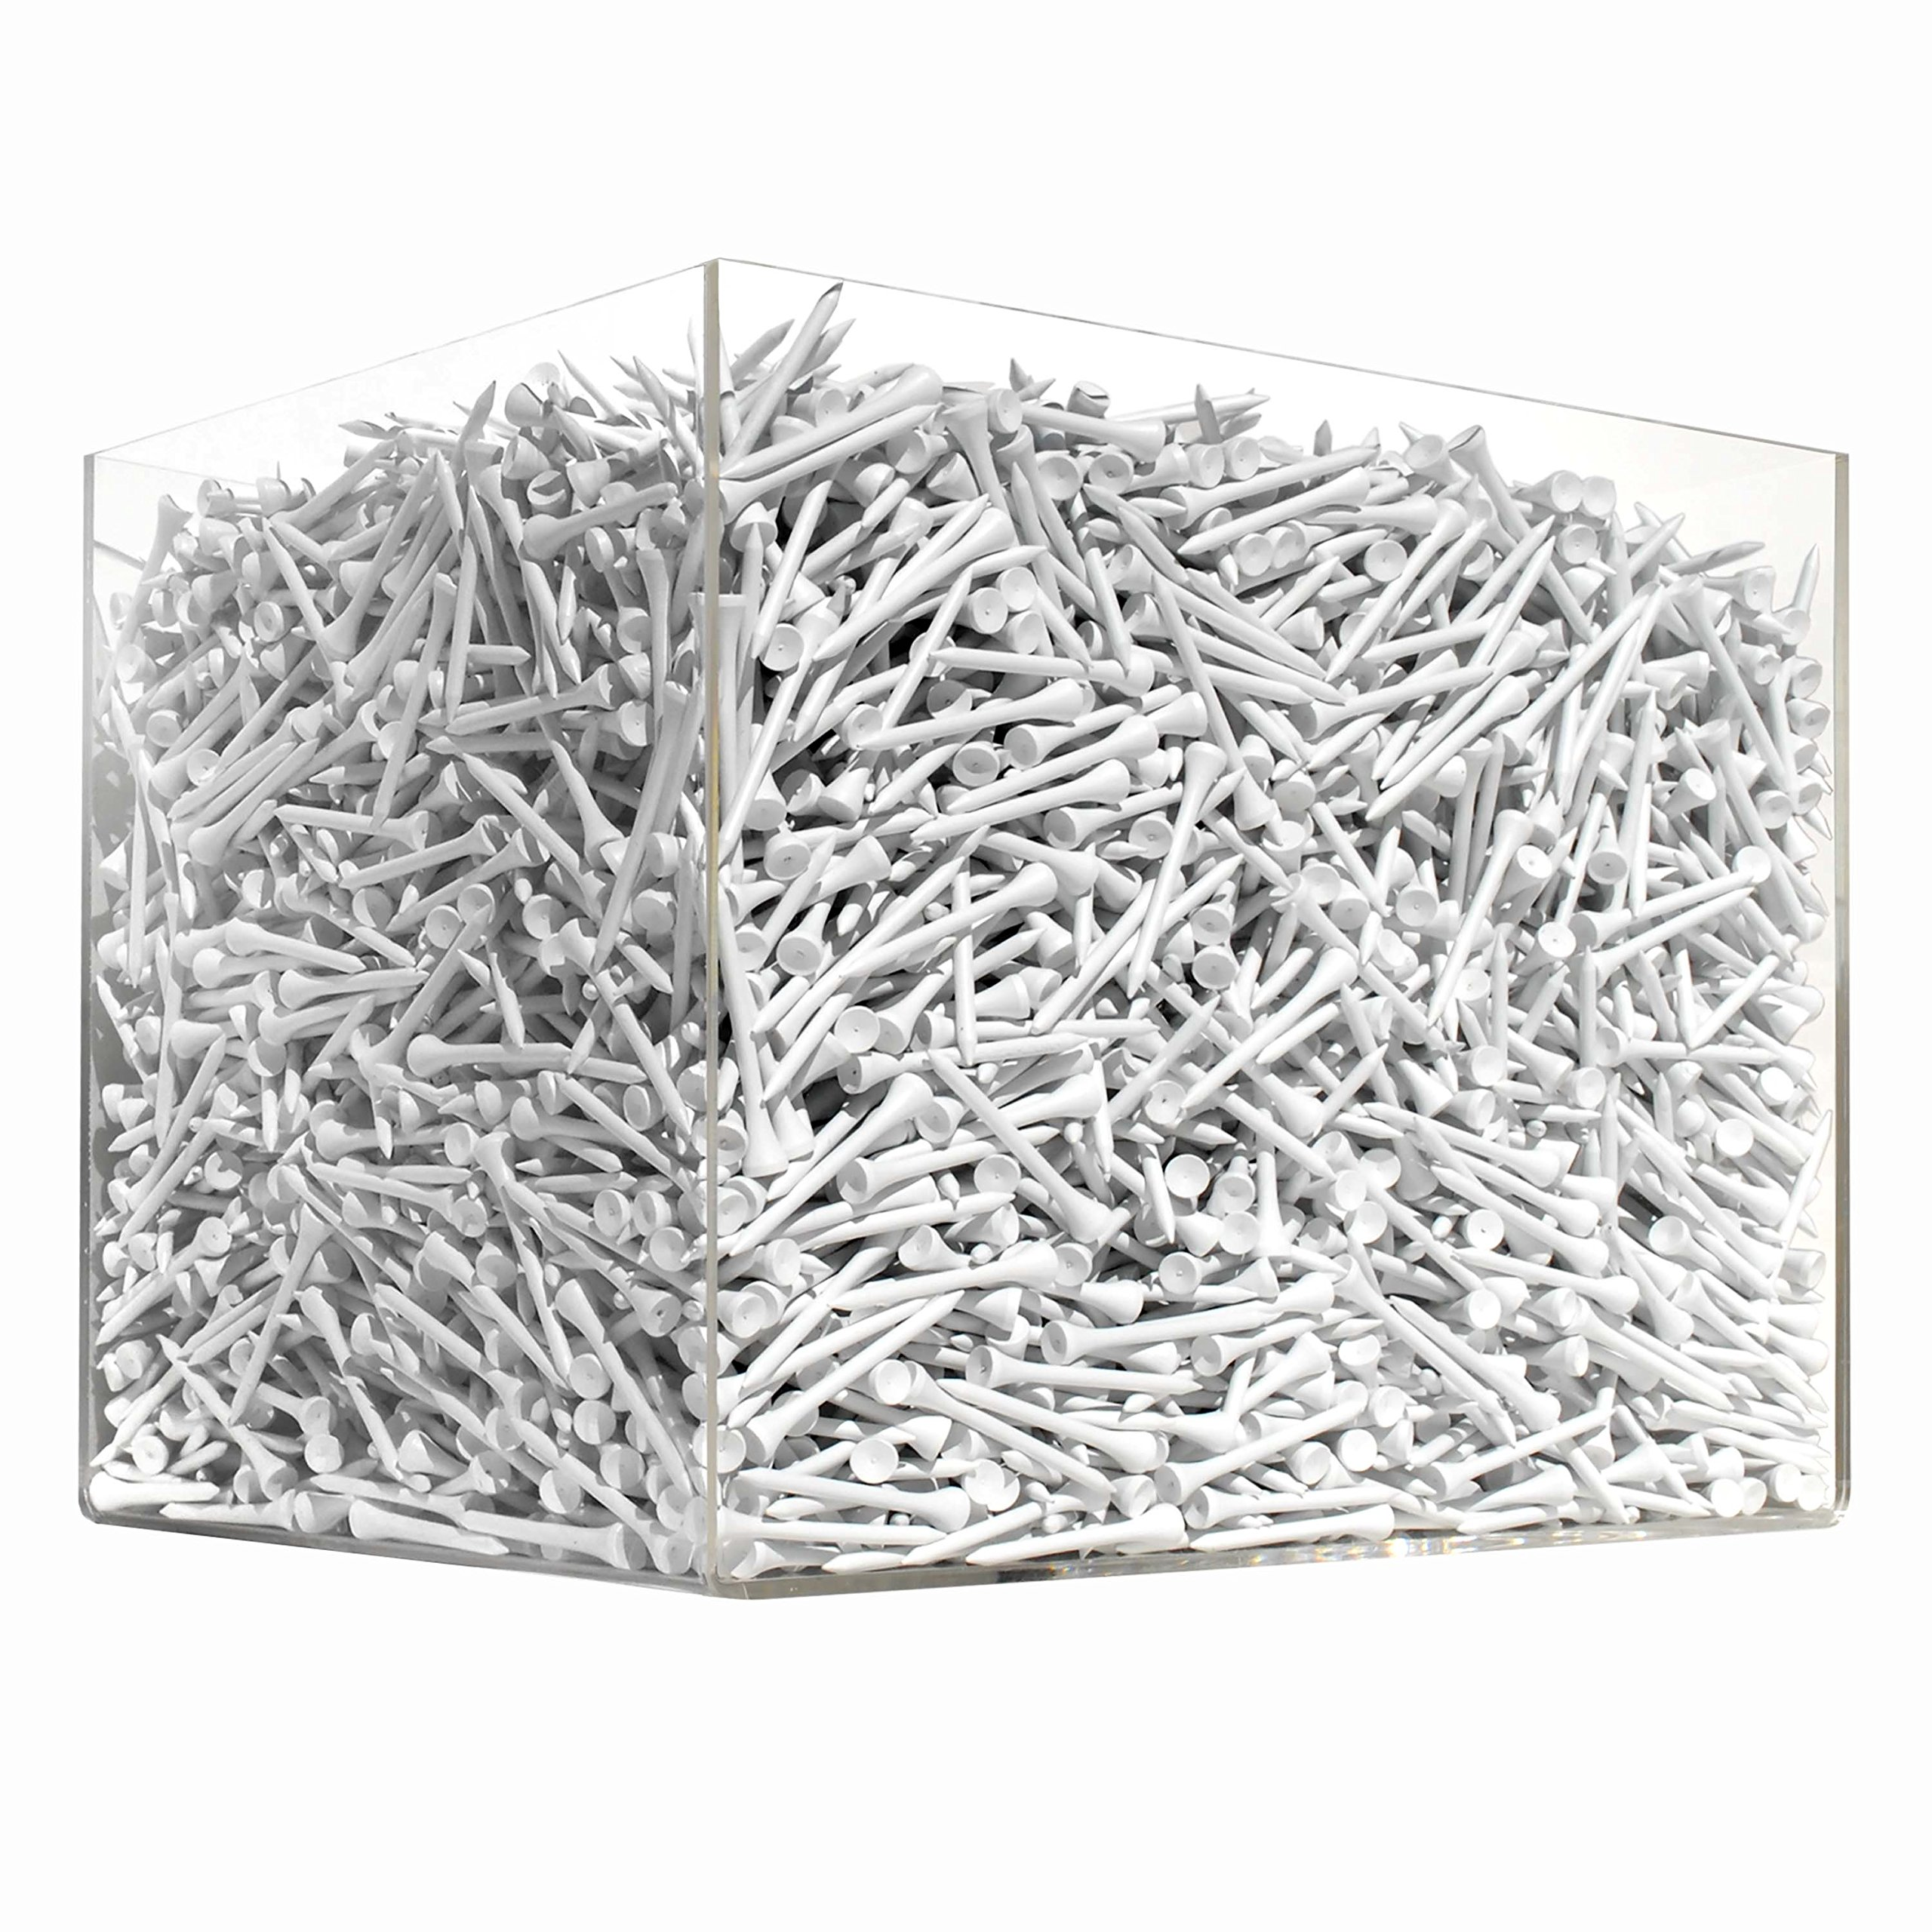 10,000 Case of Golf Tees - 2 3/4 inch white wood tees - by Golf Ball Divers